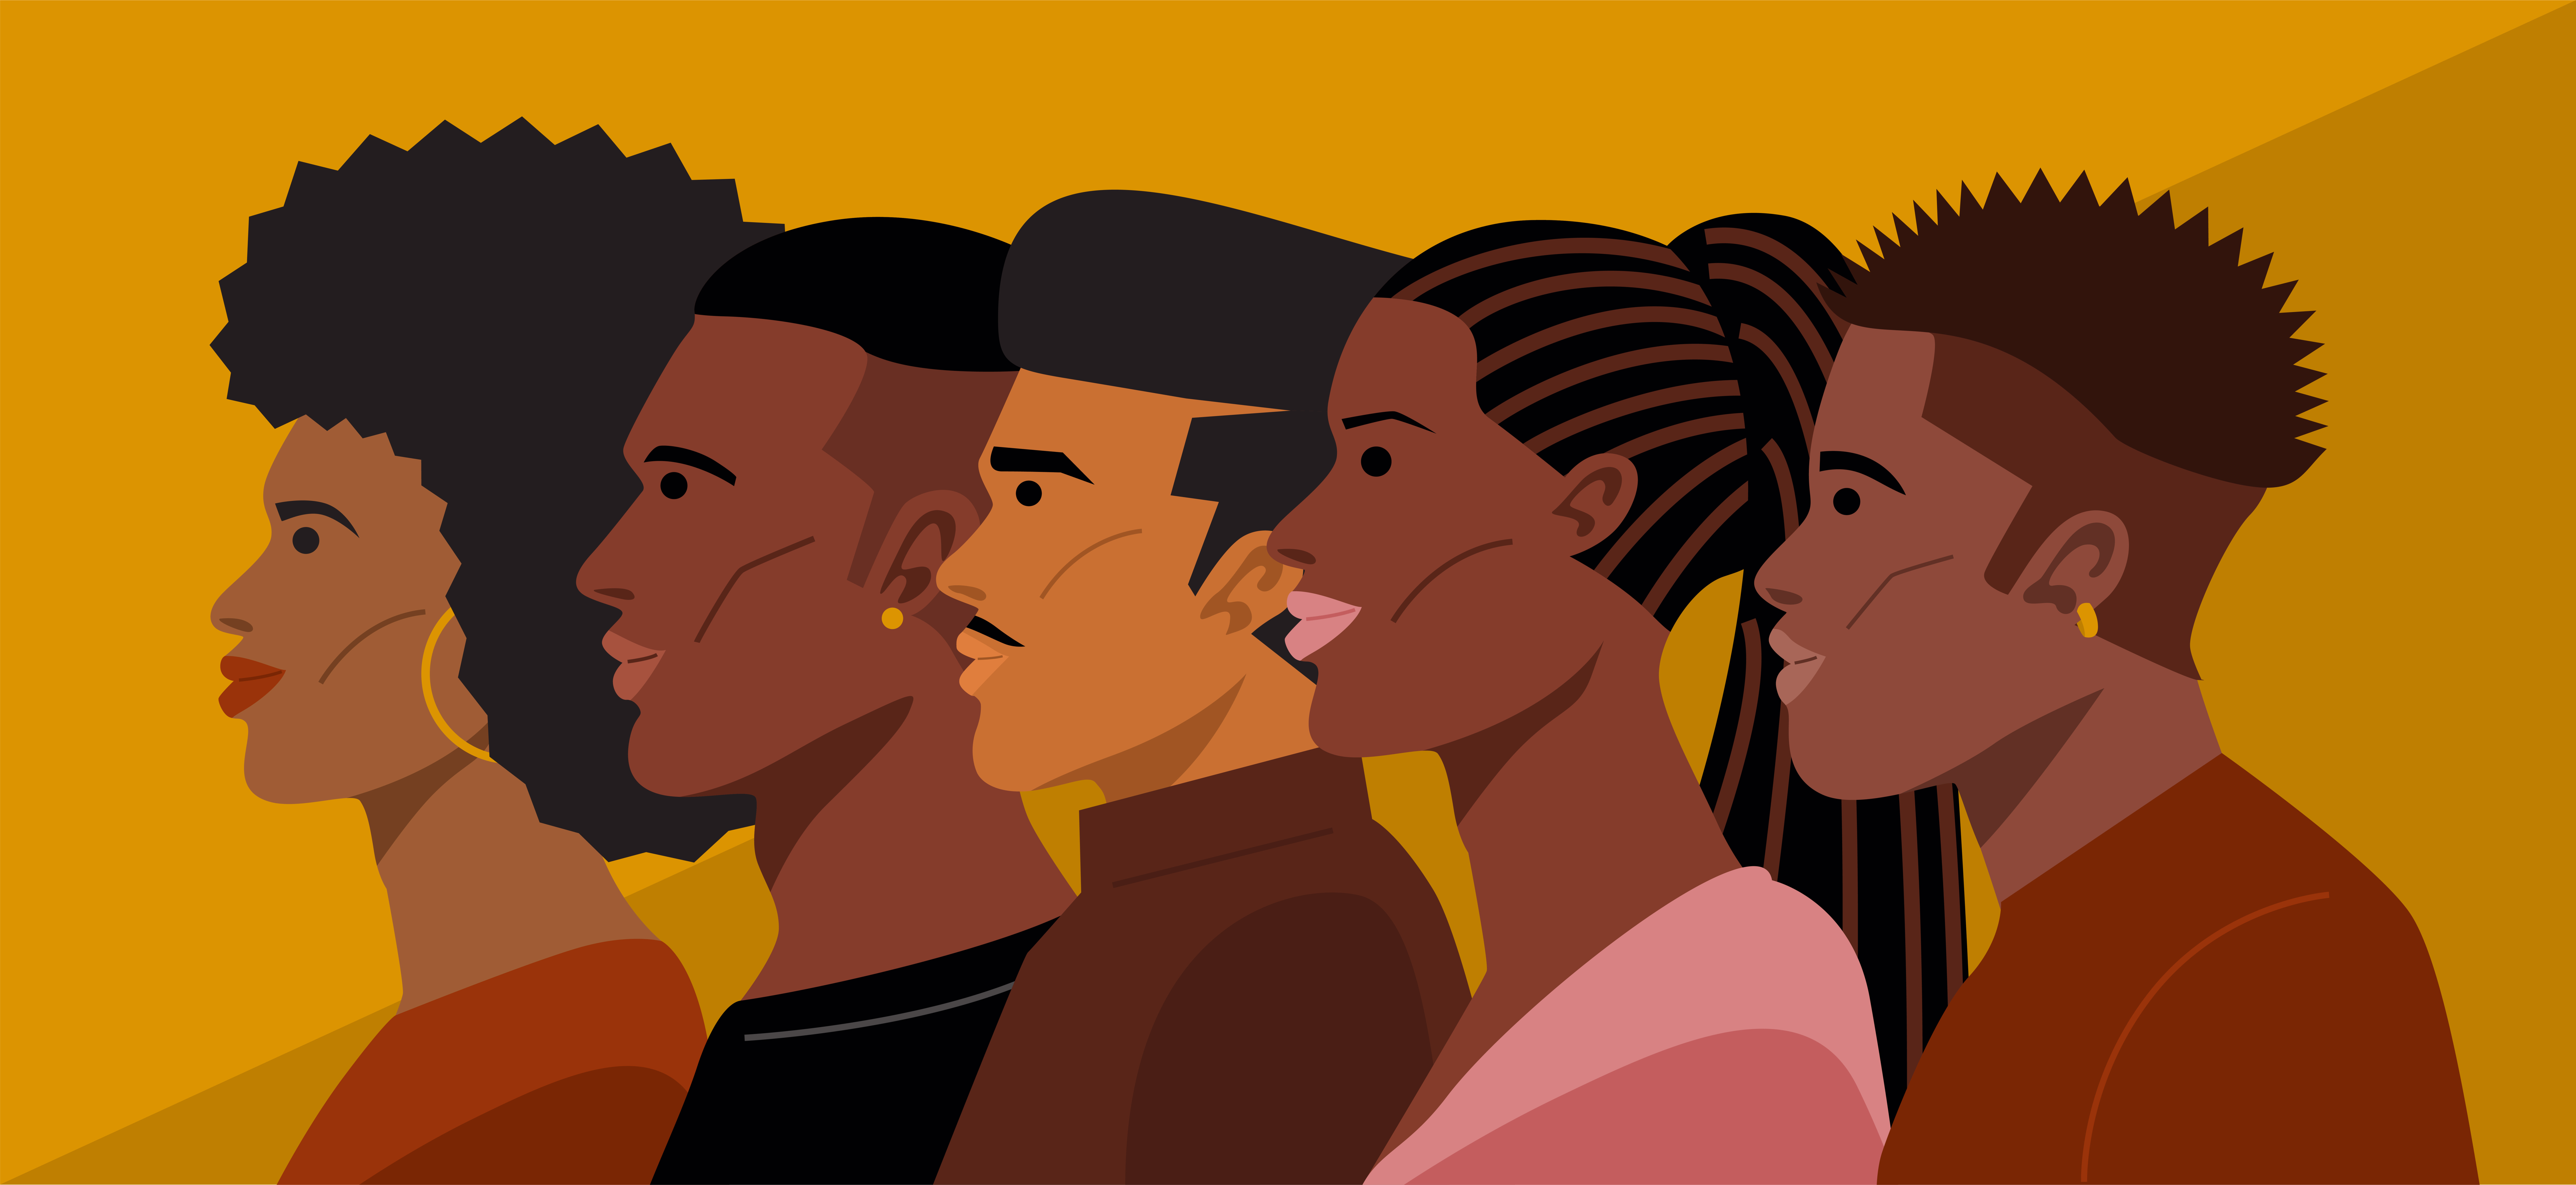 Image of five Black people in profile with different skin tones and hair styles